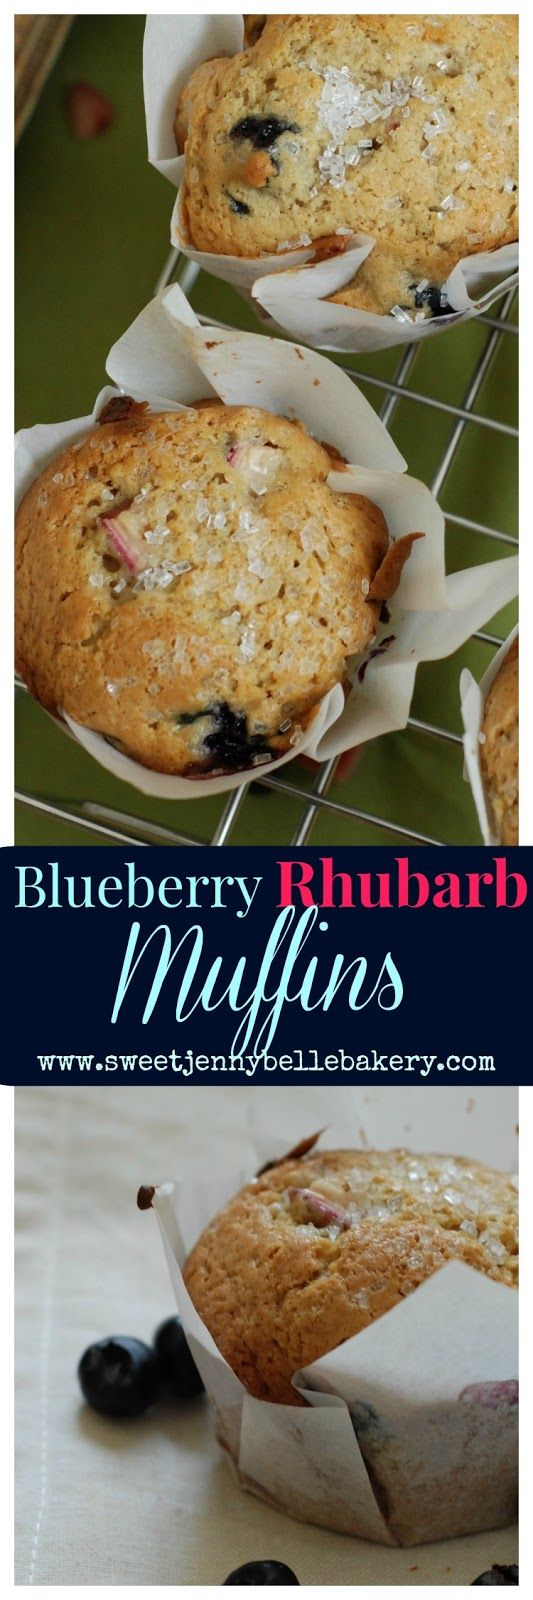 easy blueberry rhubarb muffin recipe